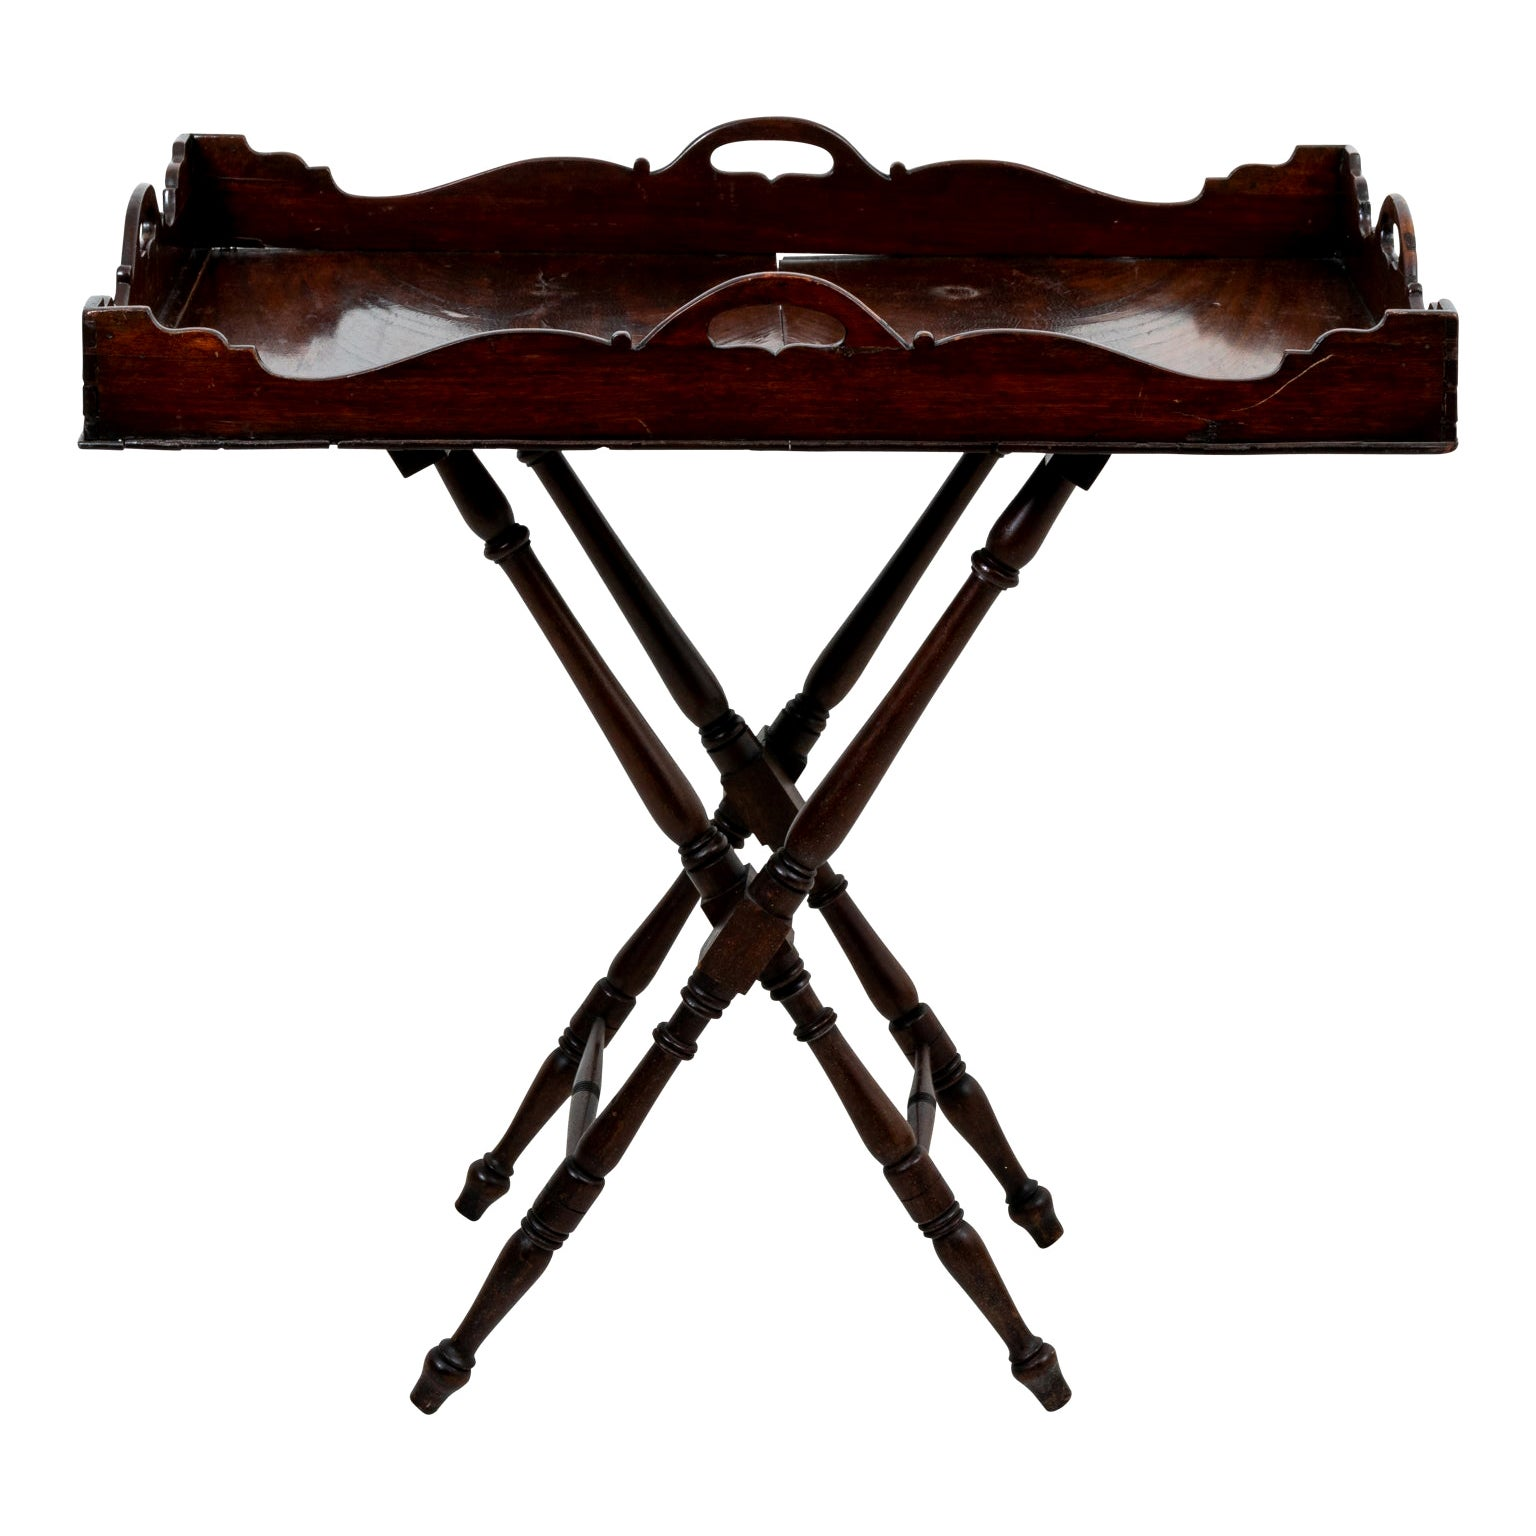 19th Century Flamed Mahogany Tray on Stand